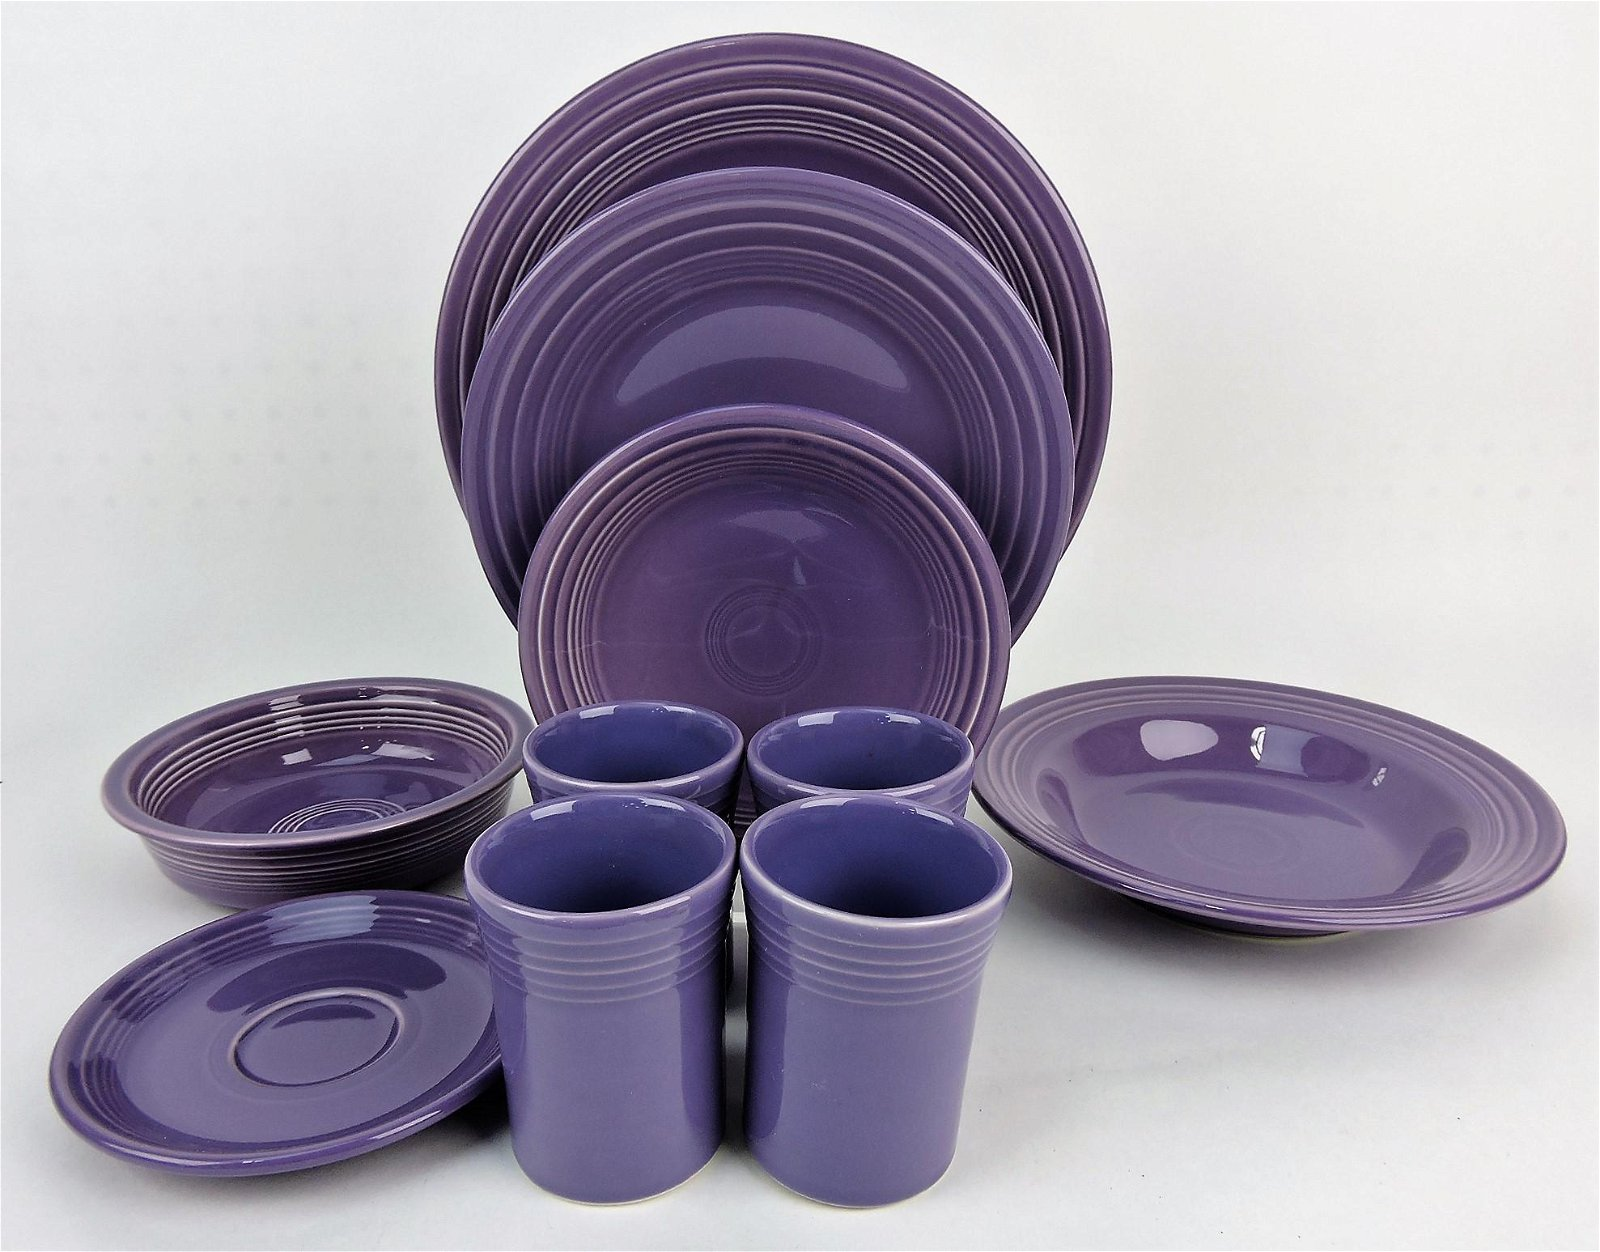 Fiesta Post 86 lilac lot of 10 pieces